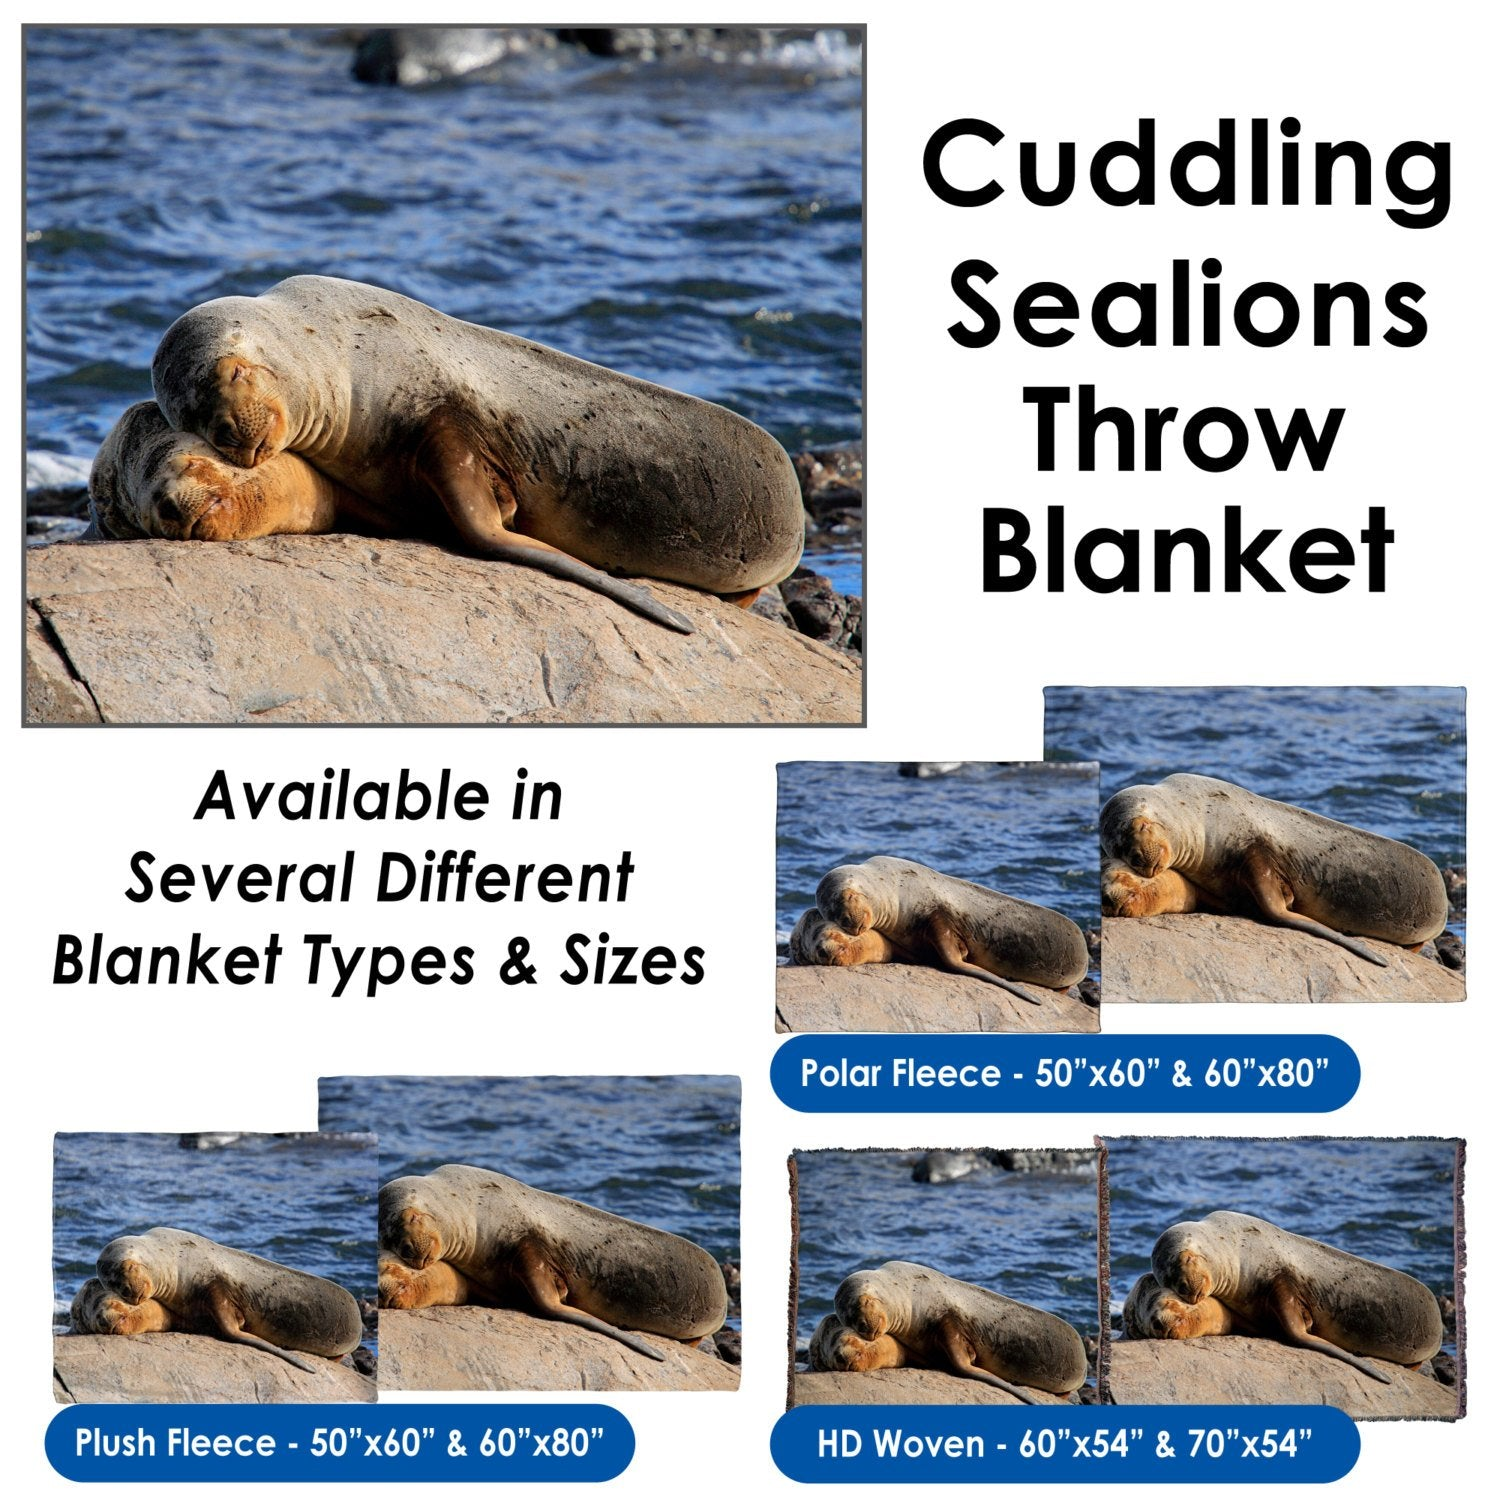 South American Sealions Cuddling – Throw Blanket / Tapestry Wall Hanging